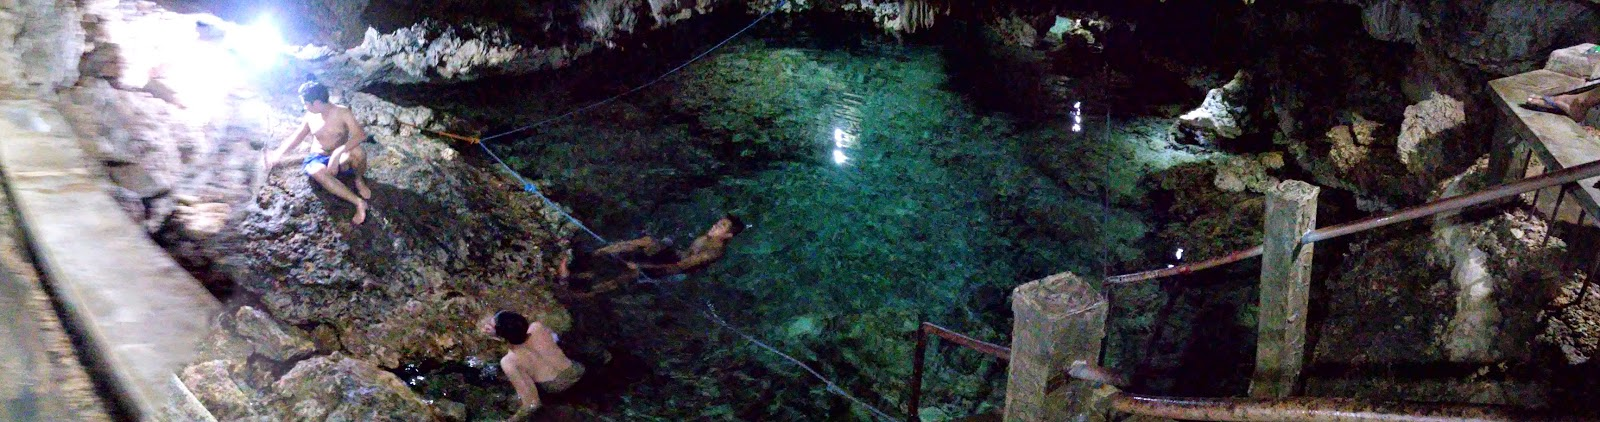 Inside the Enchanted Cave Bolinao Pangasinan